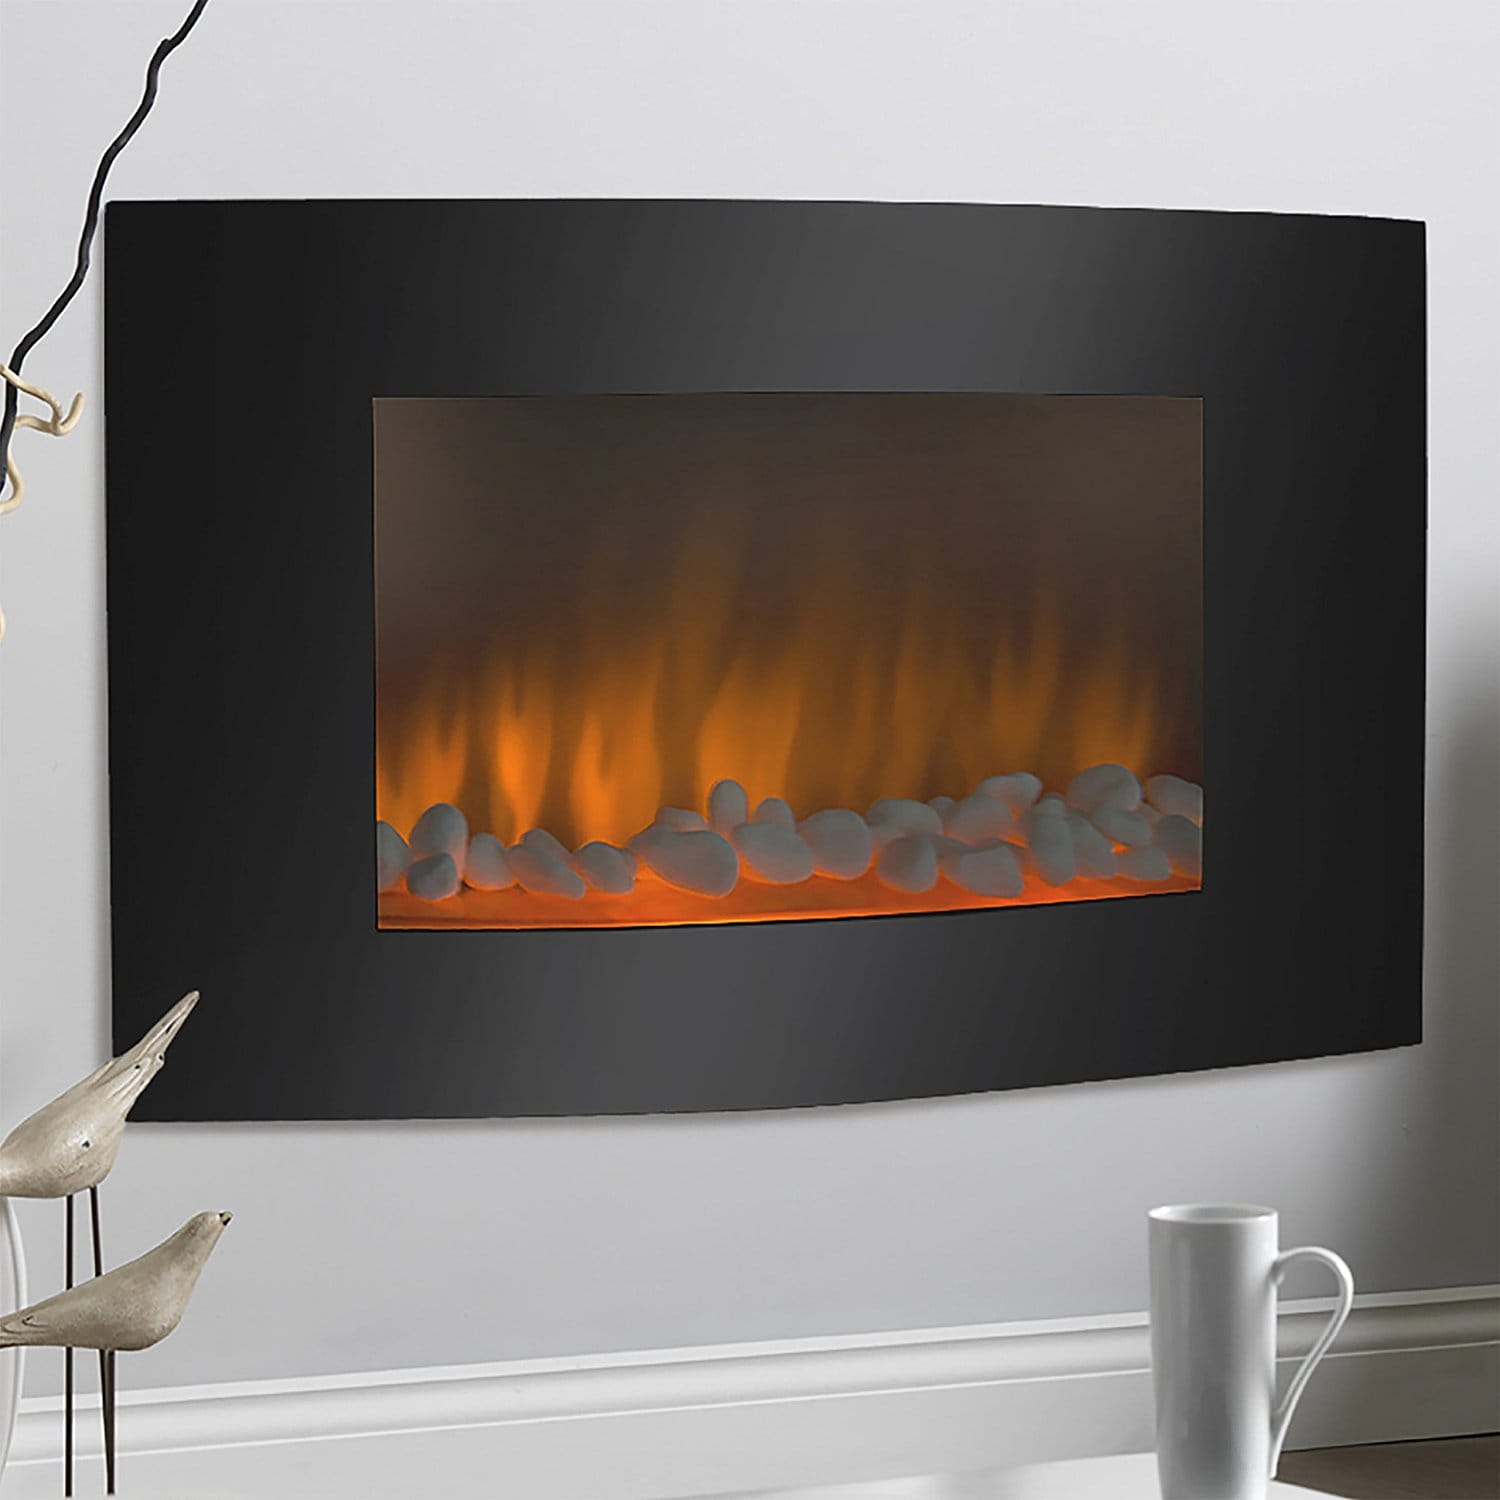 Best Electric Fireplace Review Amp Compare